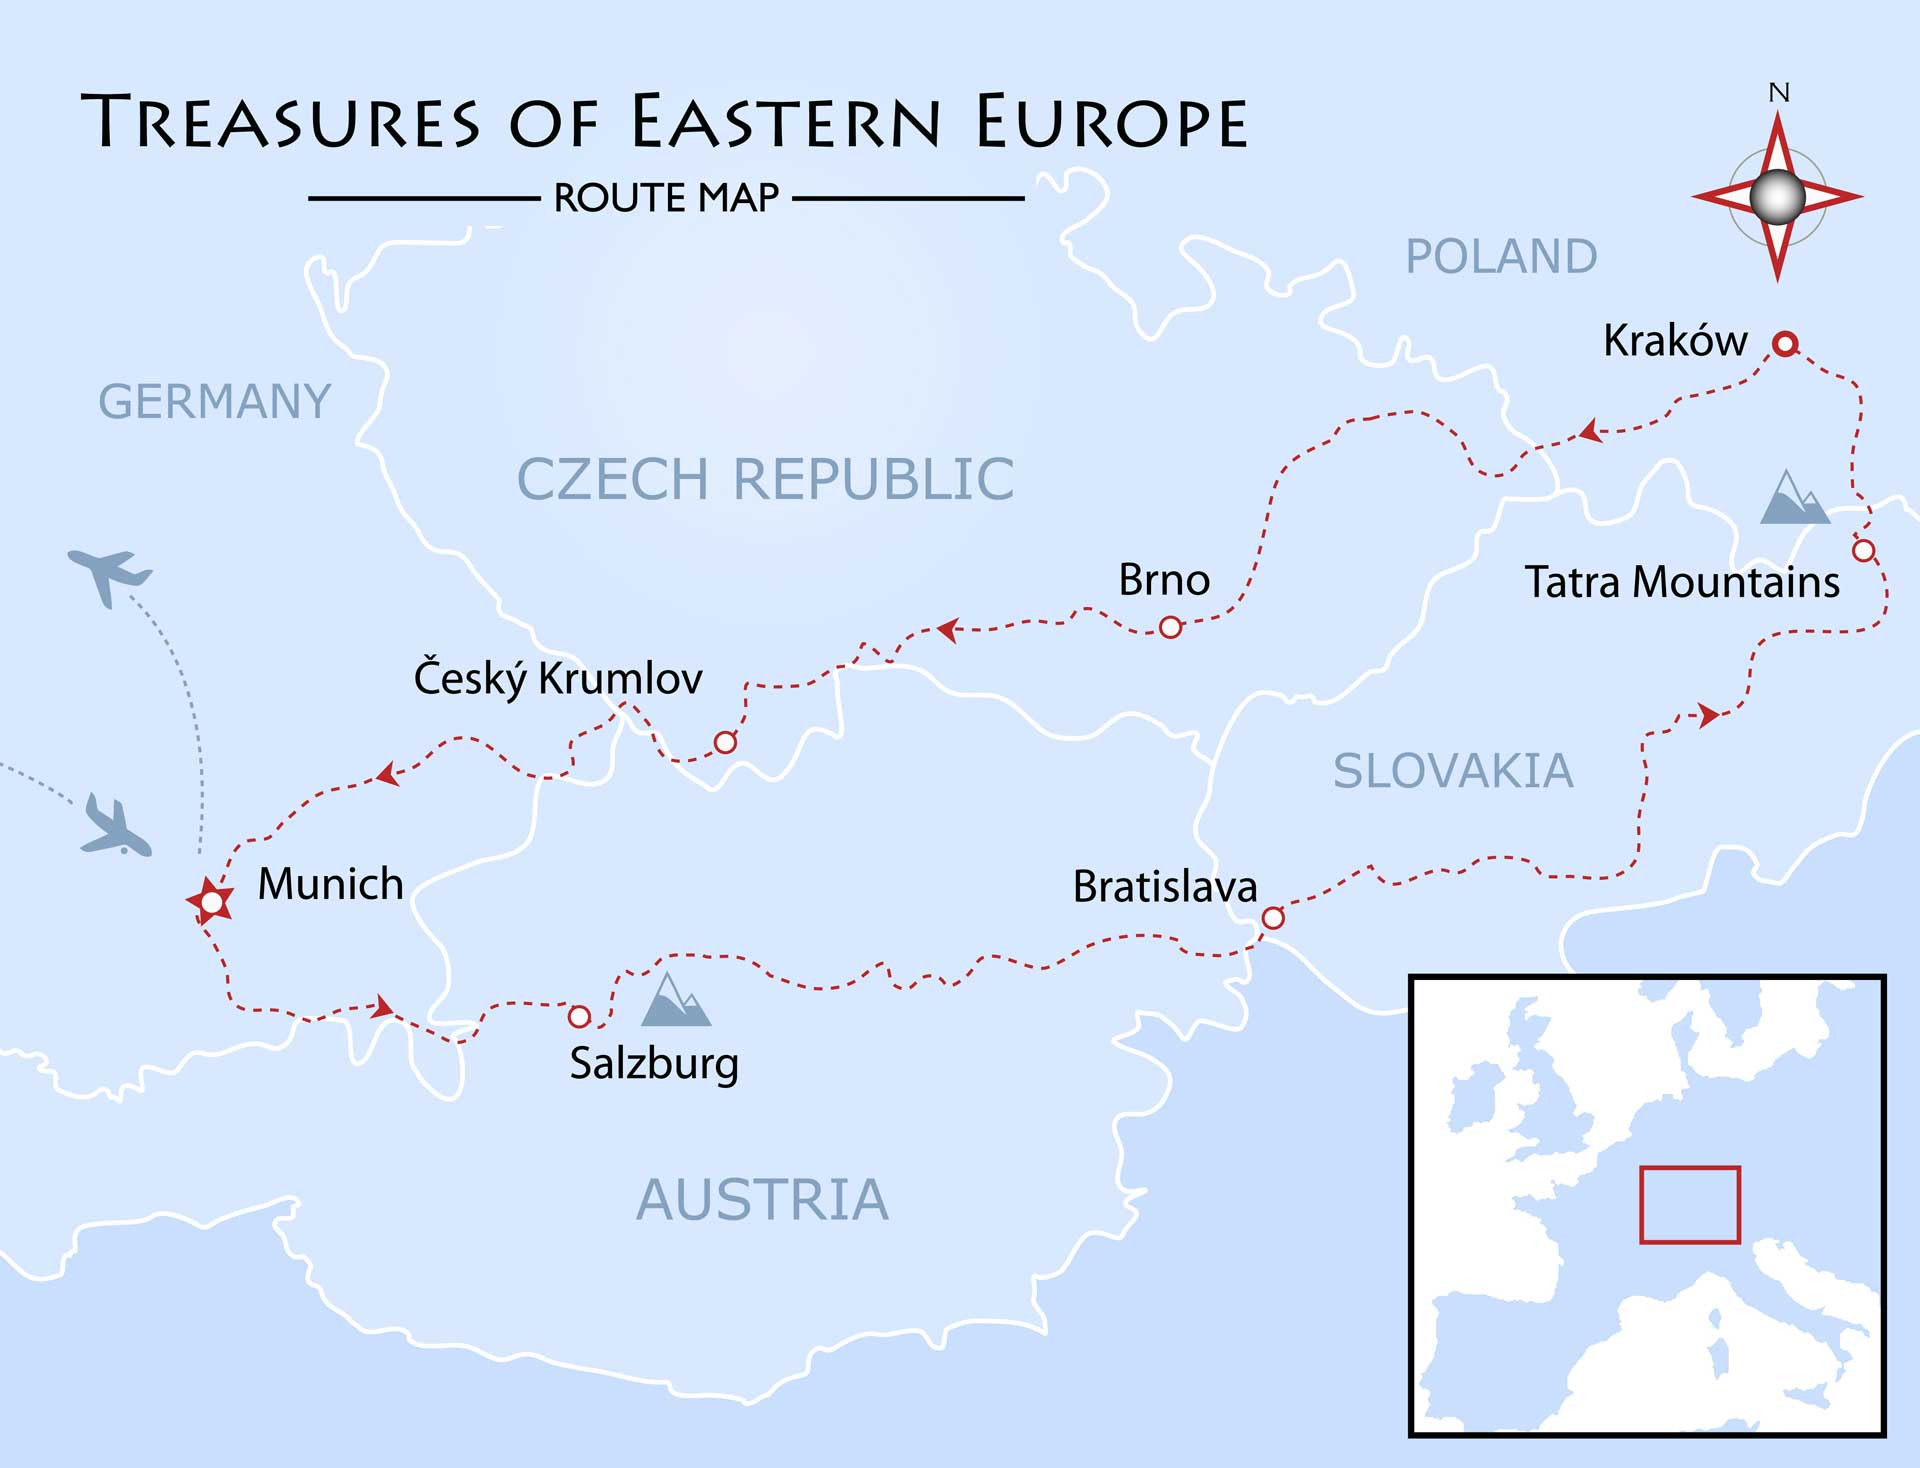 Treasures of Eastern Europe Map